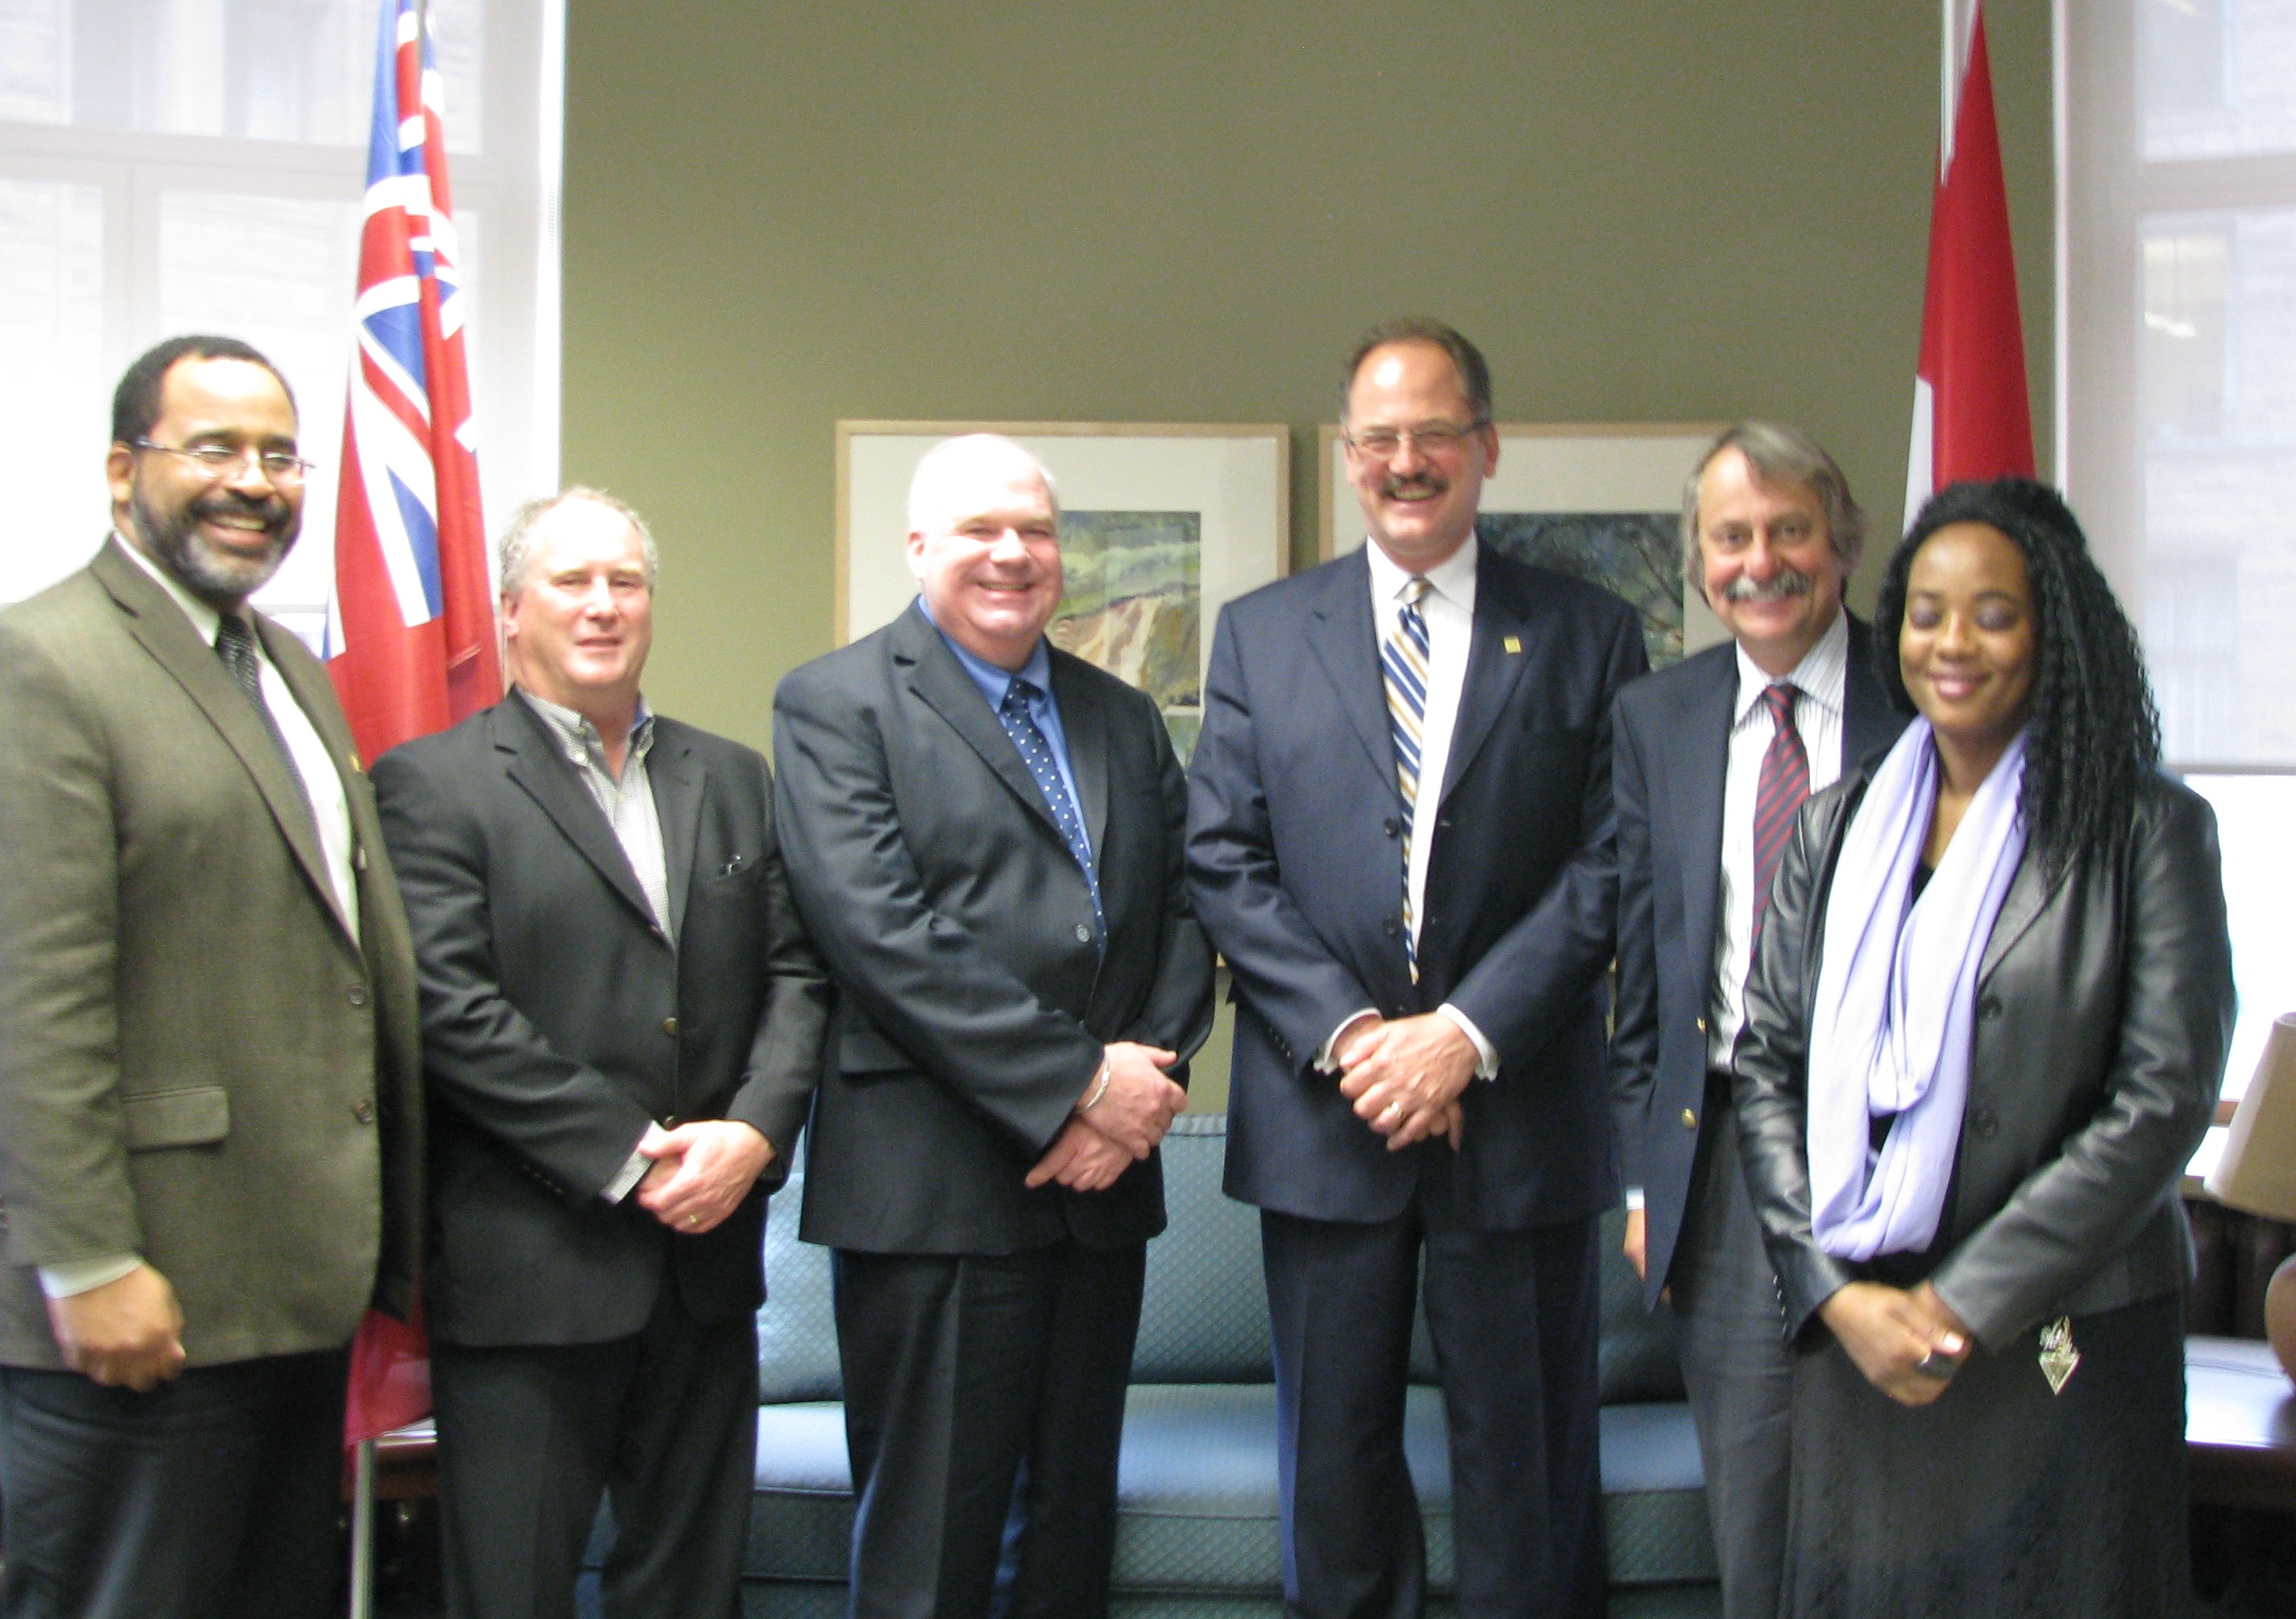 (L-R) Al Jones PAC, Richard Borland, MPP Jim Wilson, Advocis Simcoe-Muskoka Chapter President Raymond Matt, Gary Laakso and Advocacy Chair Erika Conyette pose for a picture during their visit to Queen's Park on April 29, 2014.